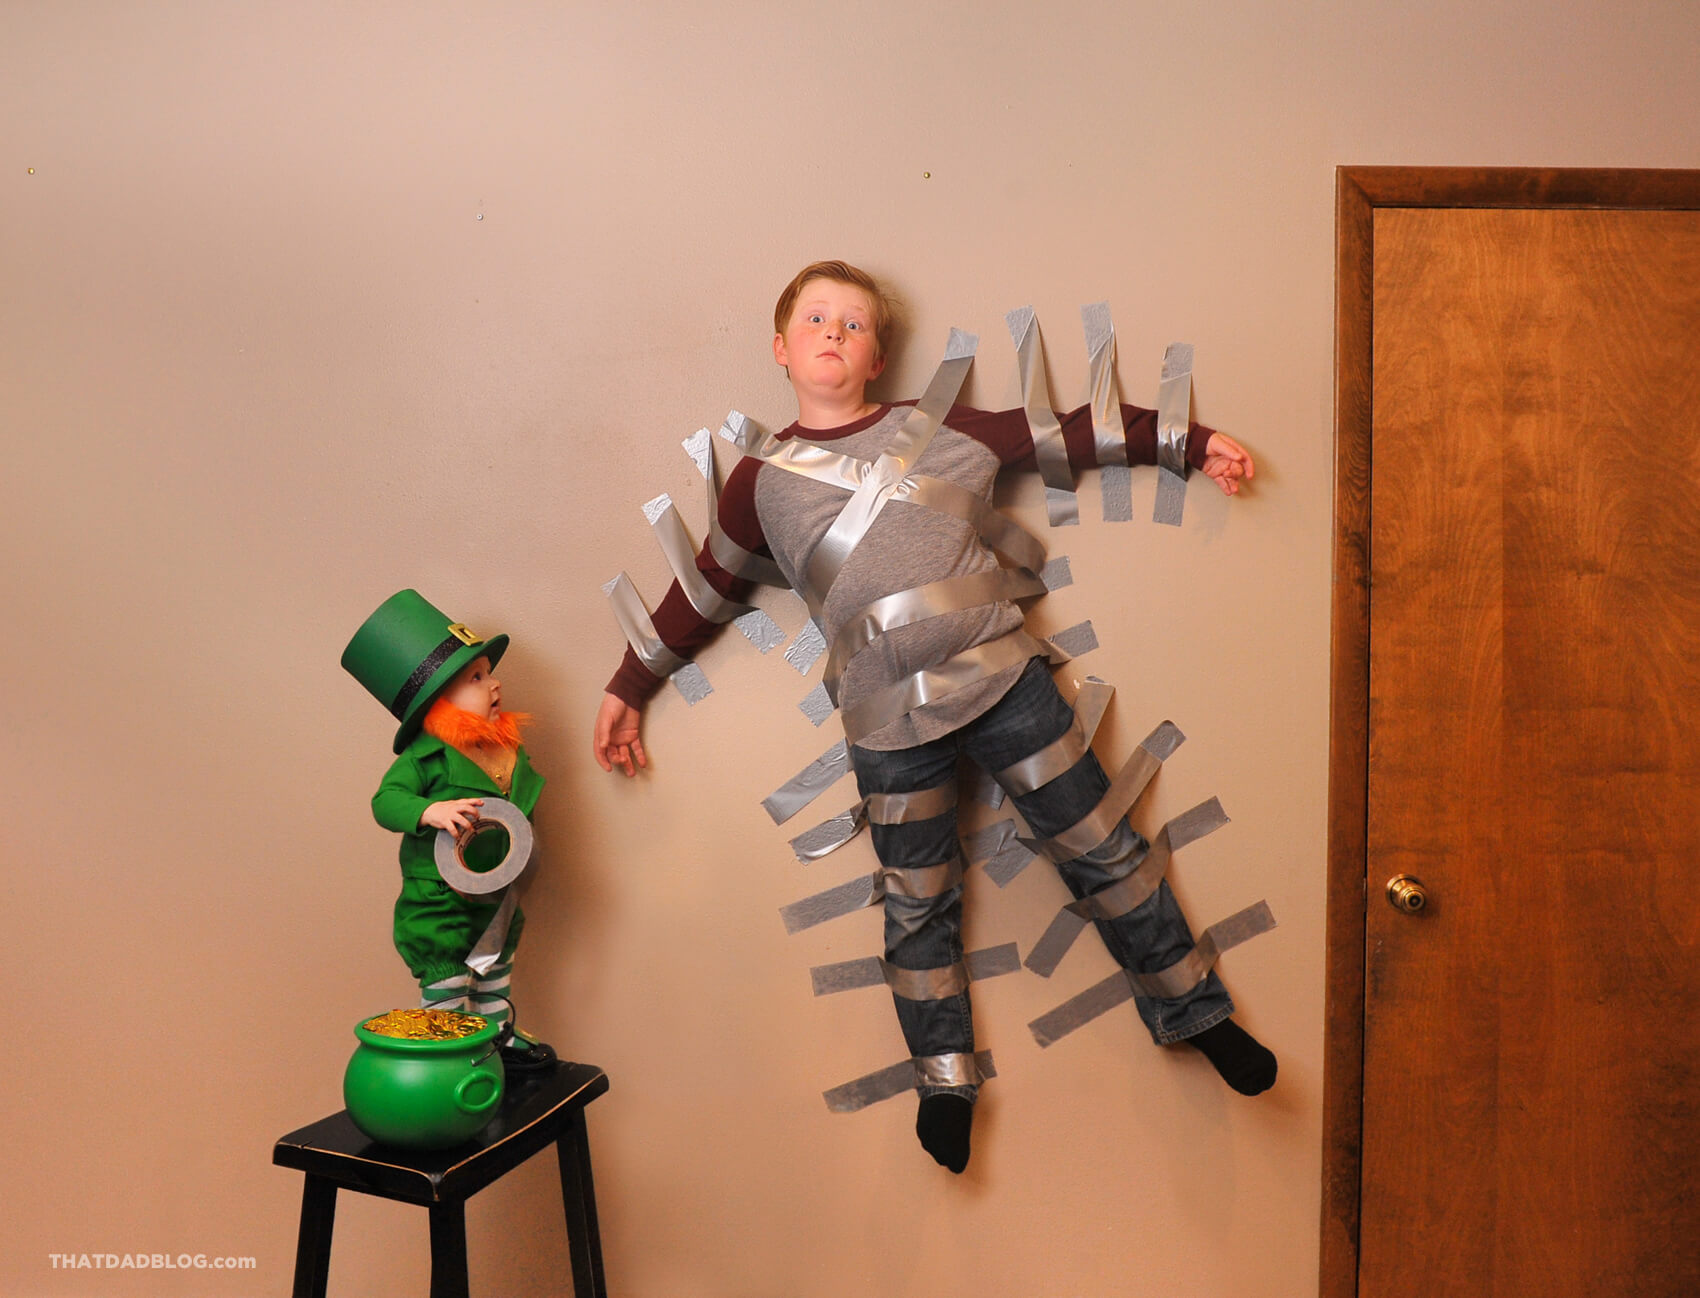 Elf leprechaun duct tape final crop-2